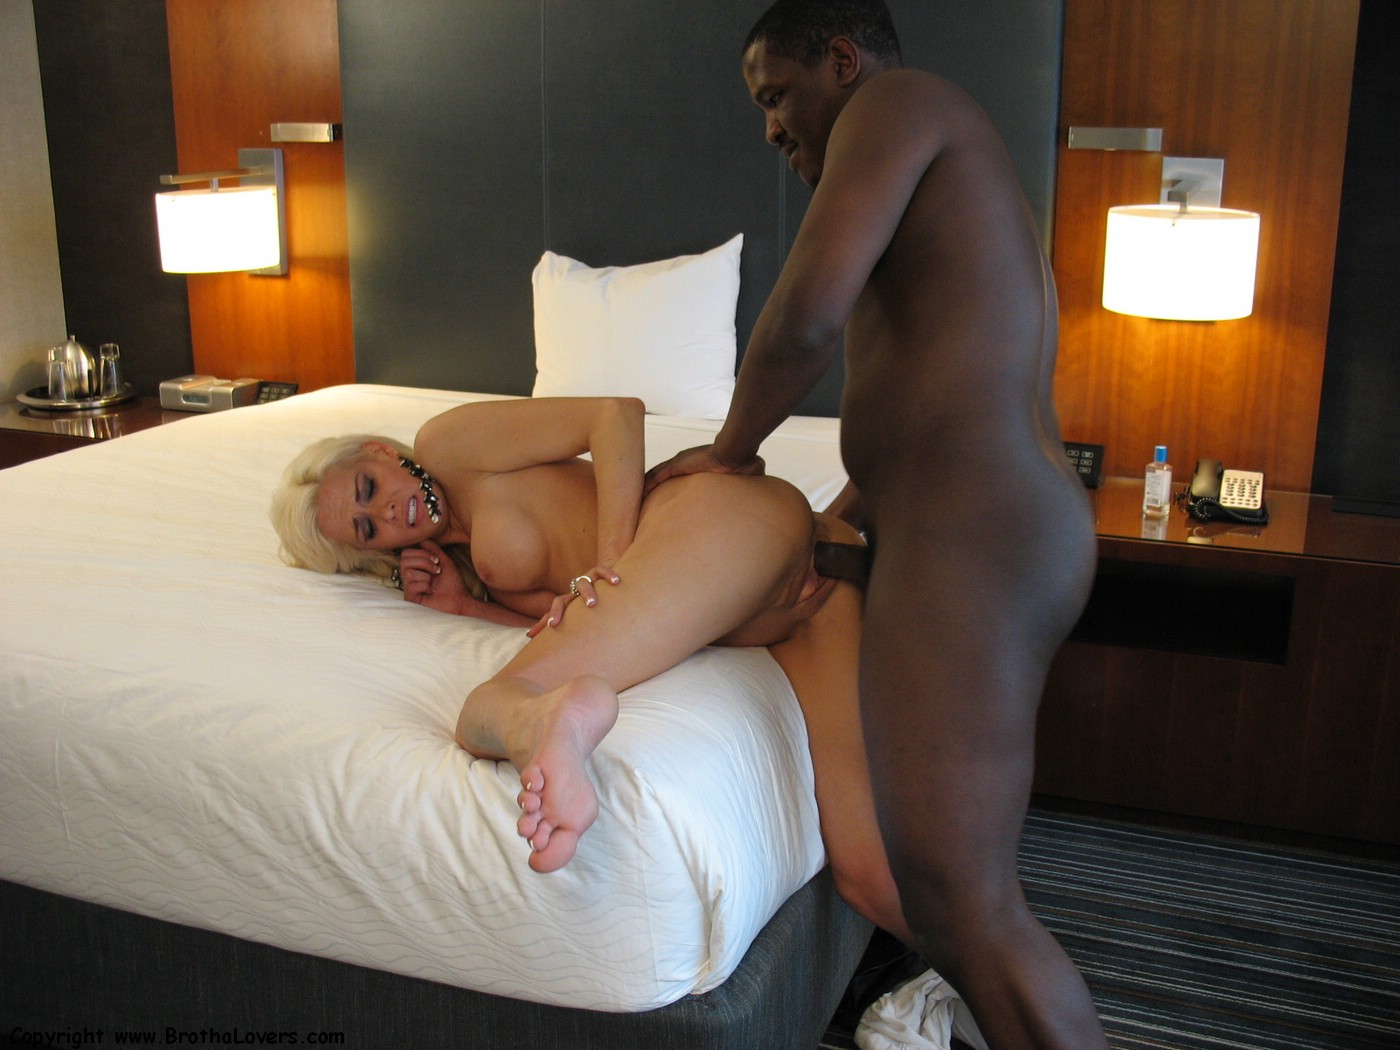 free pics of interracial lovers